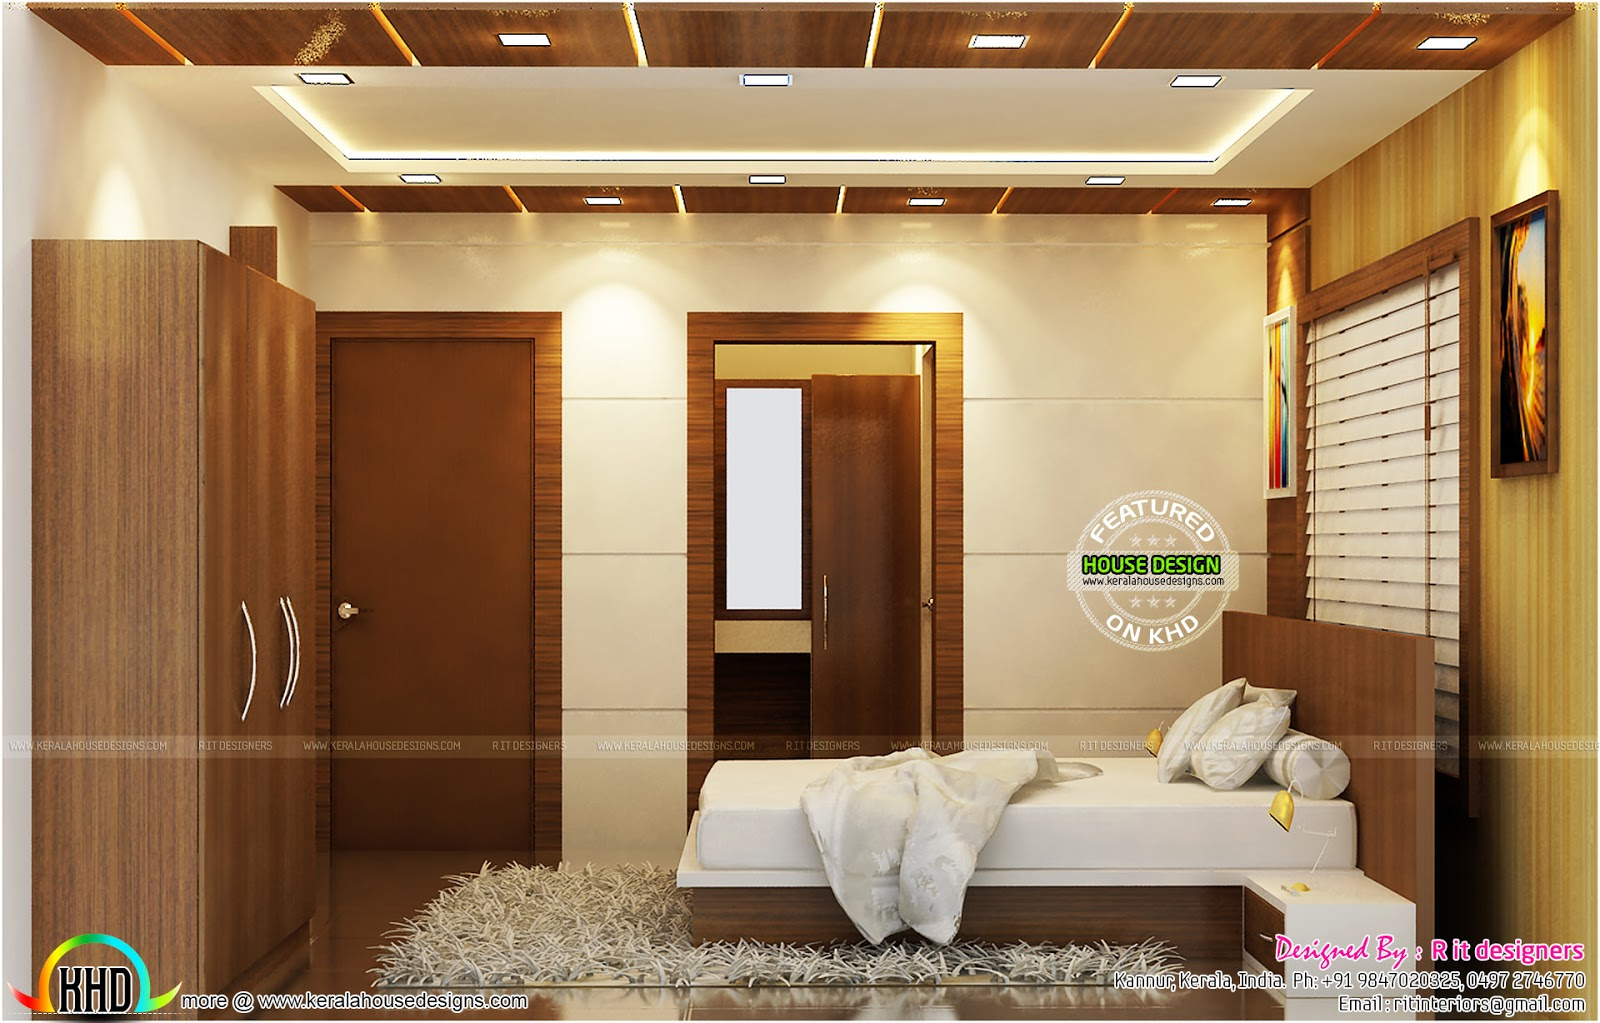 Kitchen, Bedroom and Dining interiors - Kerala home design ...